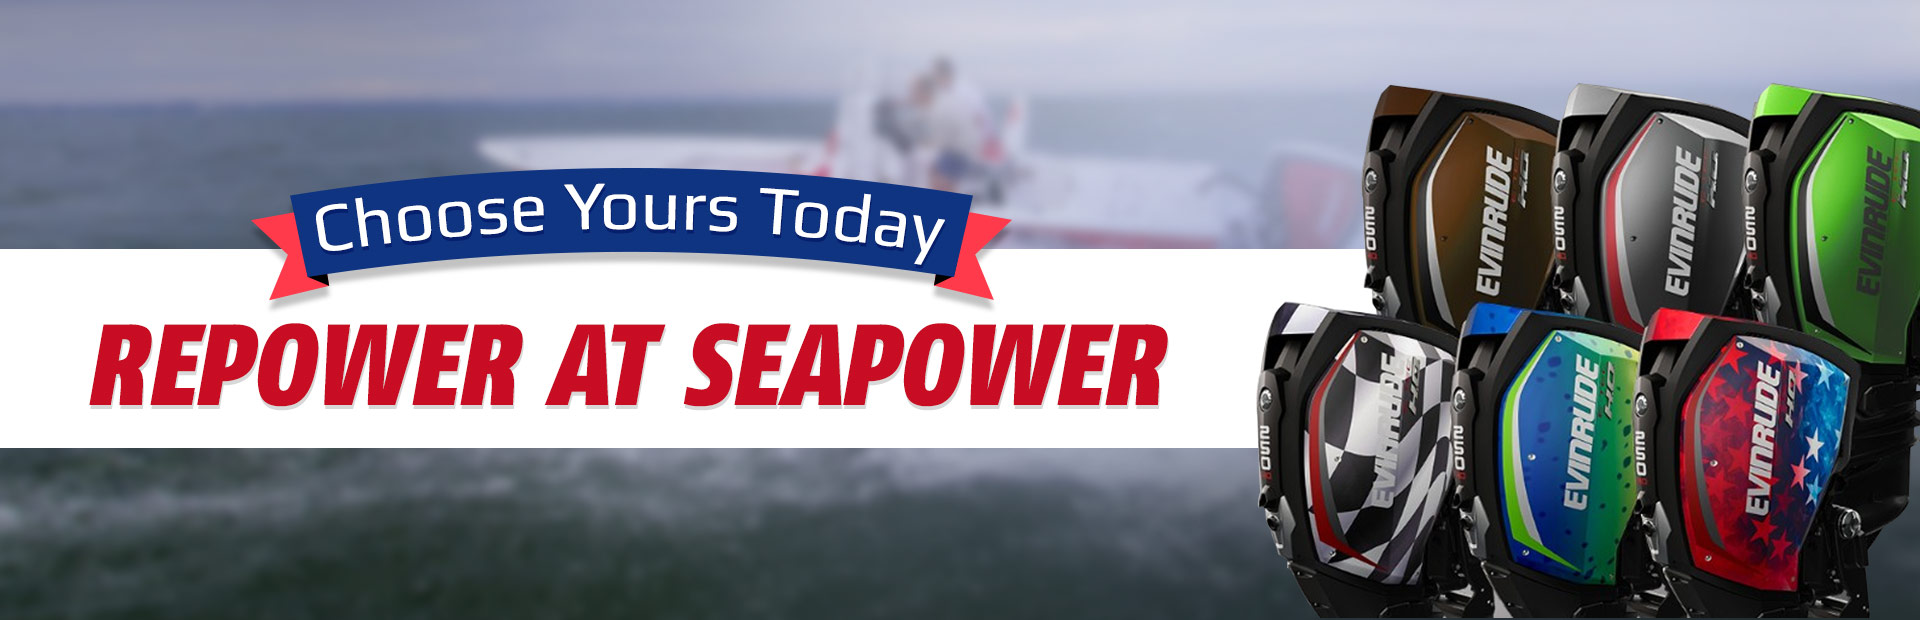 Repower at SeaPower!